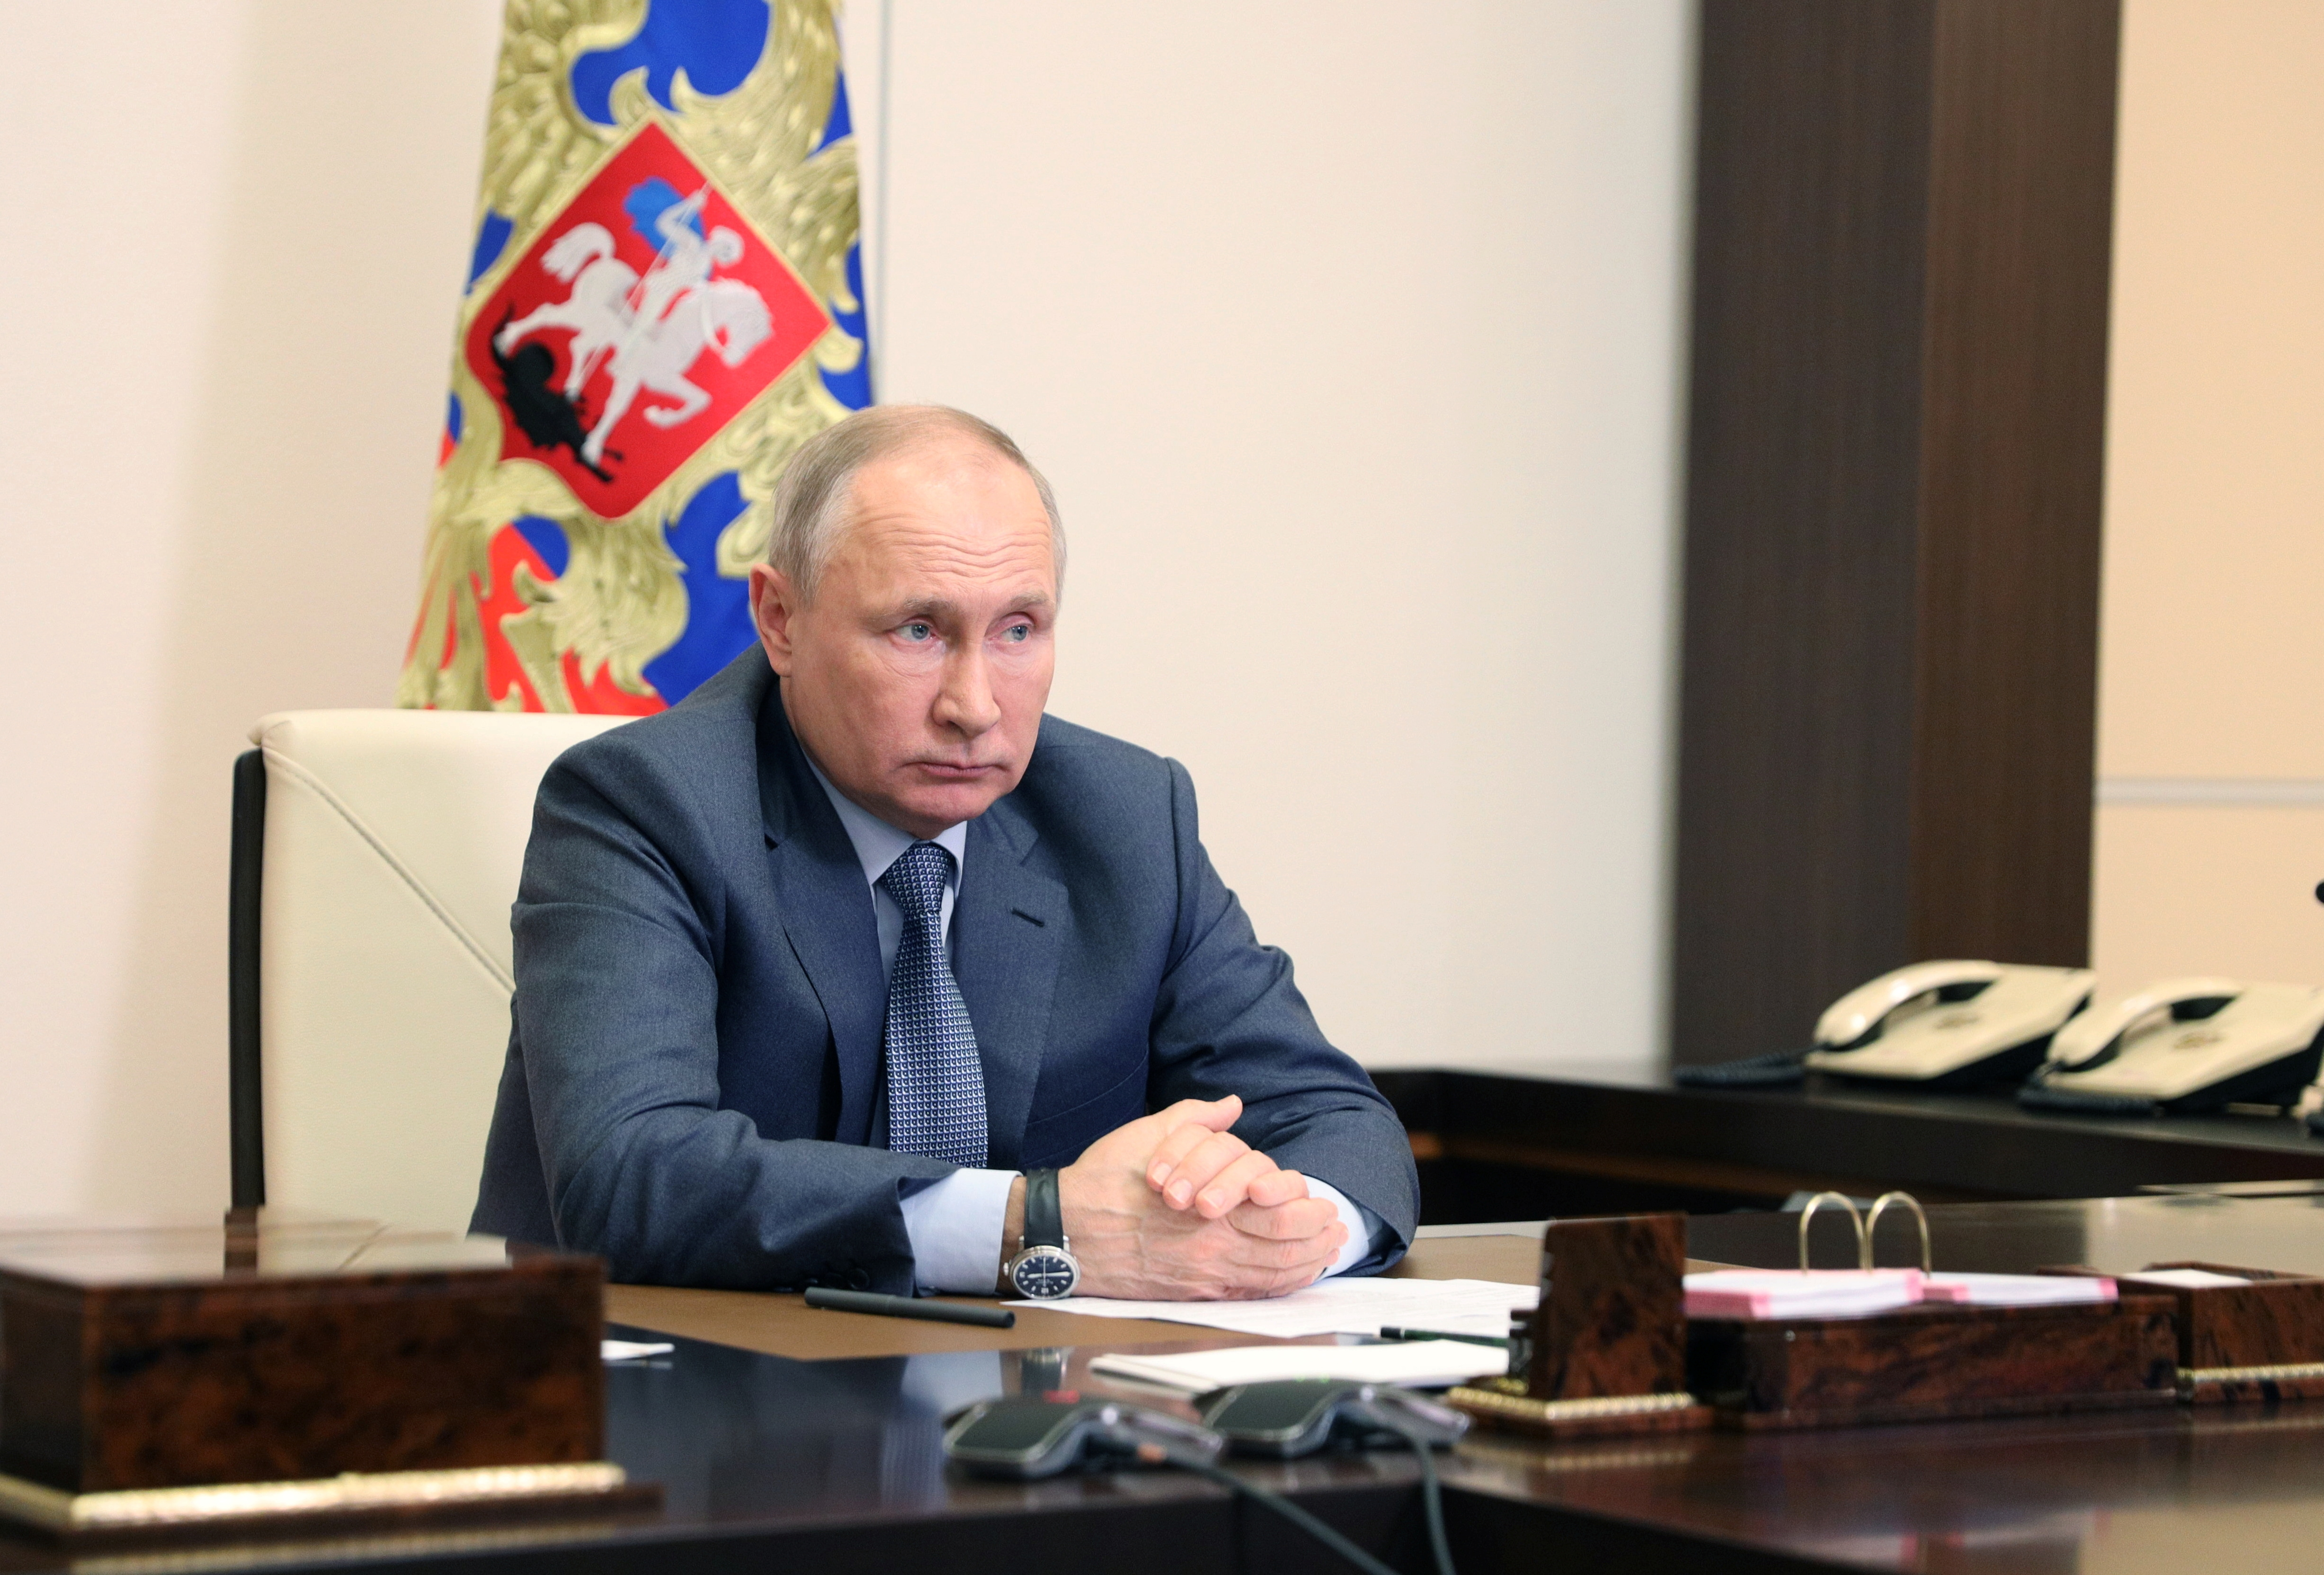 Russian President Vladimir Putin chairs a a video conference meeting with government members and officials outside Moscow, Russia May 13, 2021. Sputnik/Sergey Ilyin/Kremlin via REUTERS